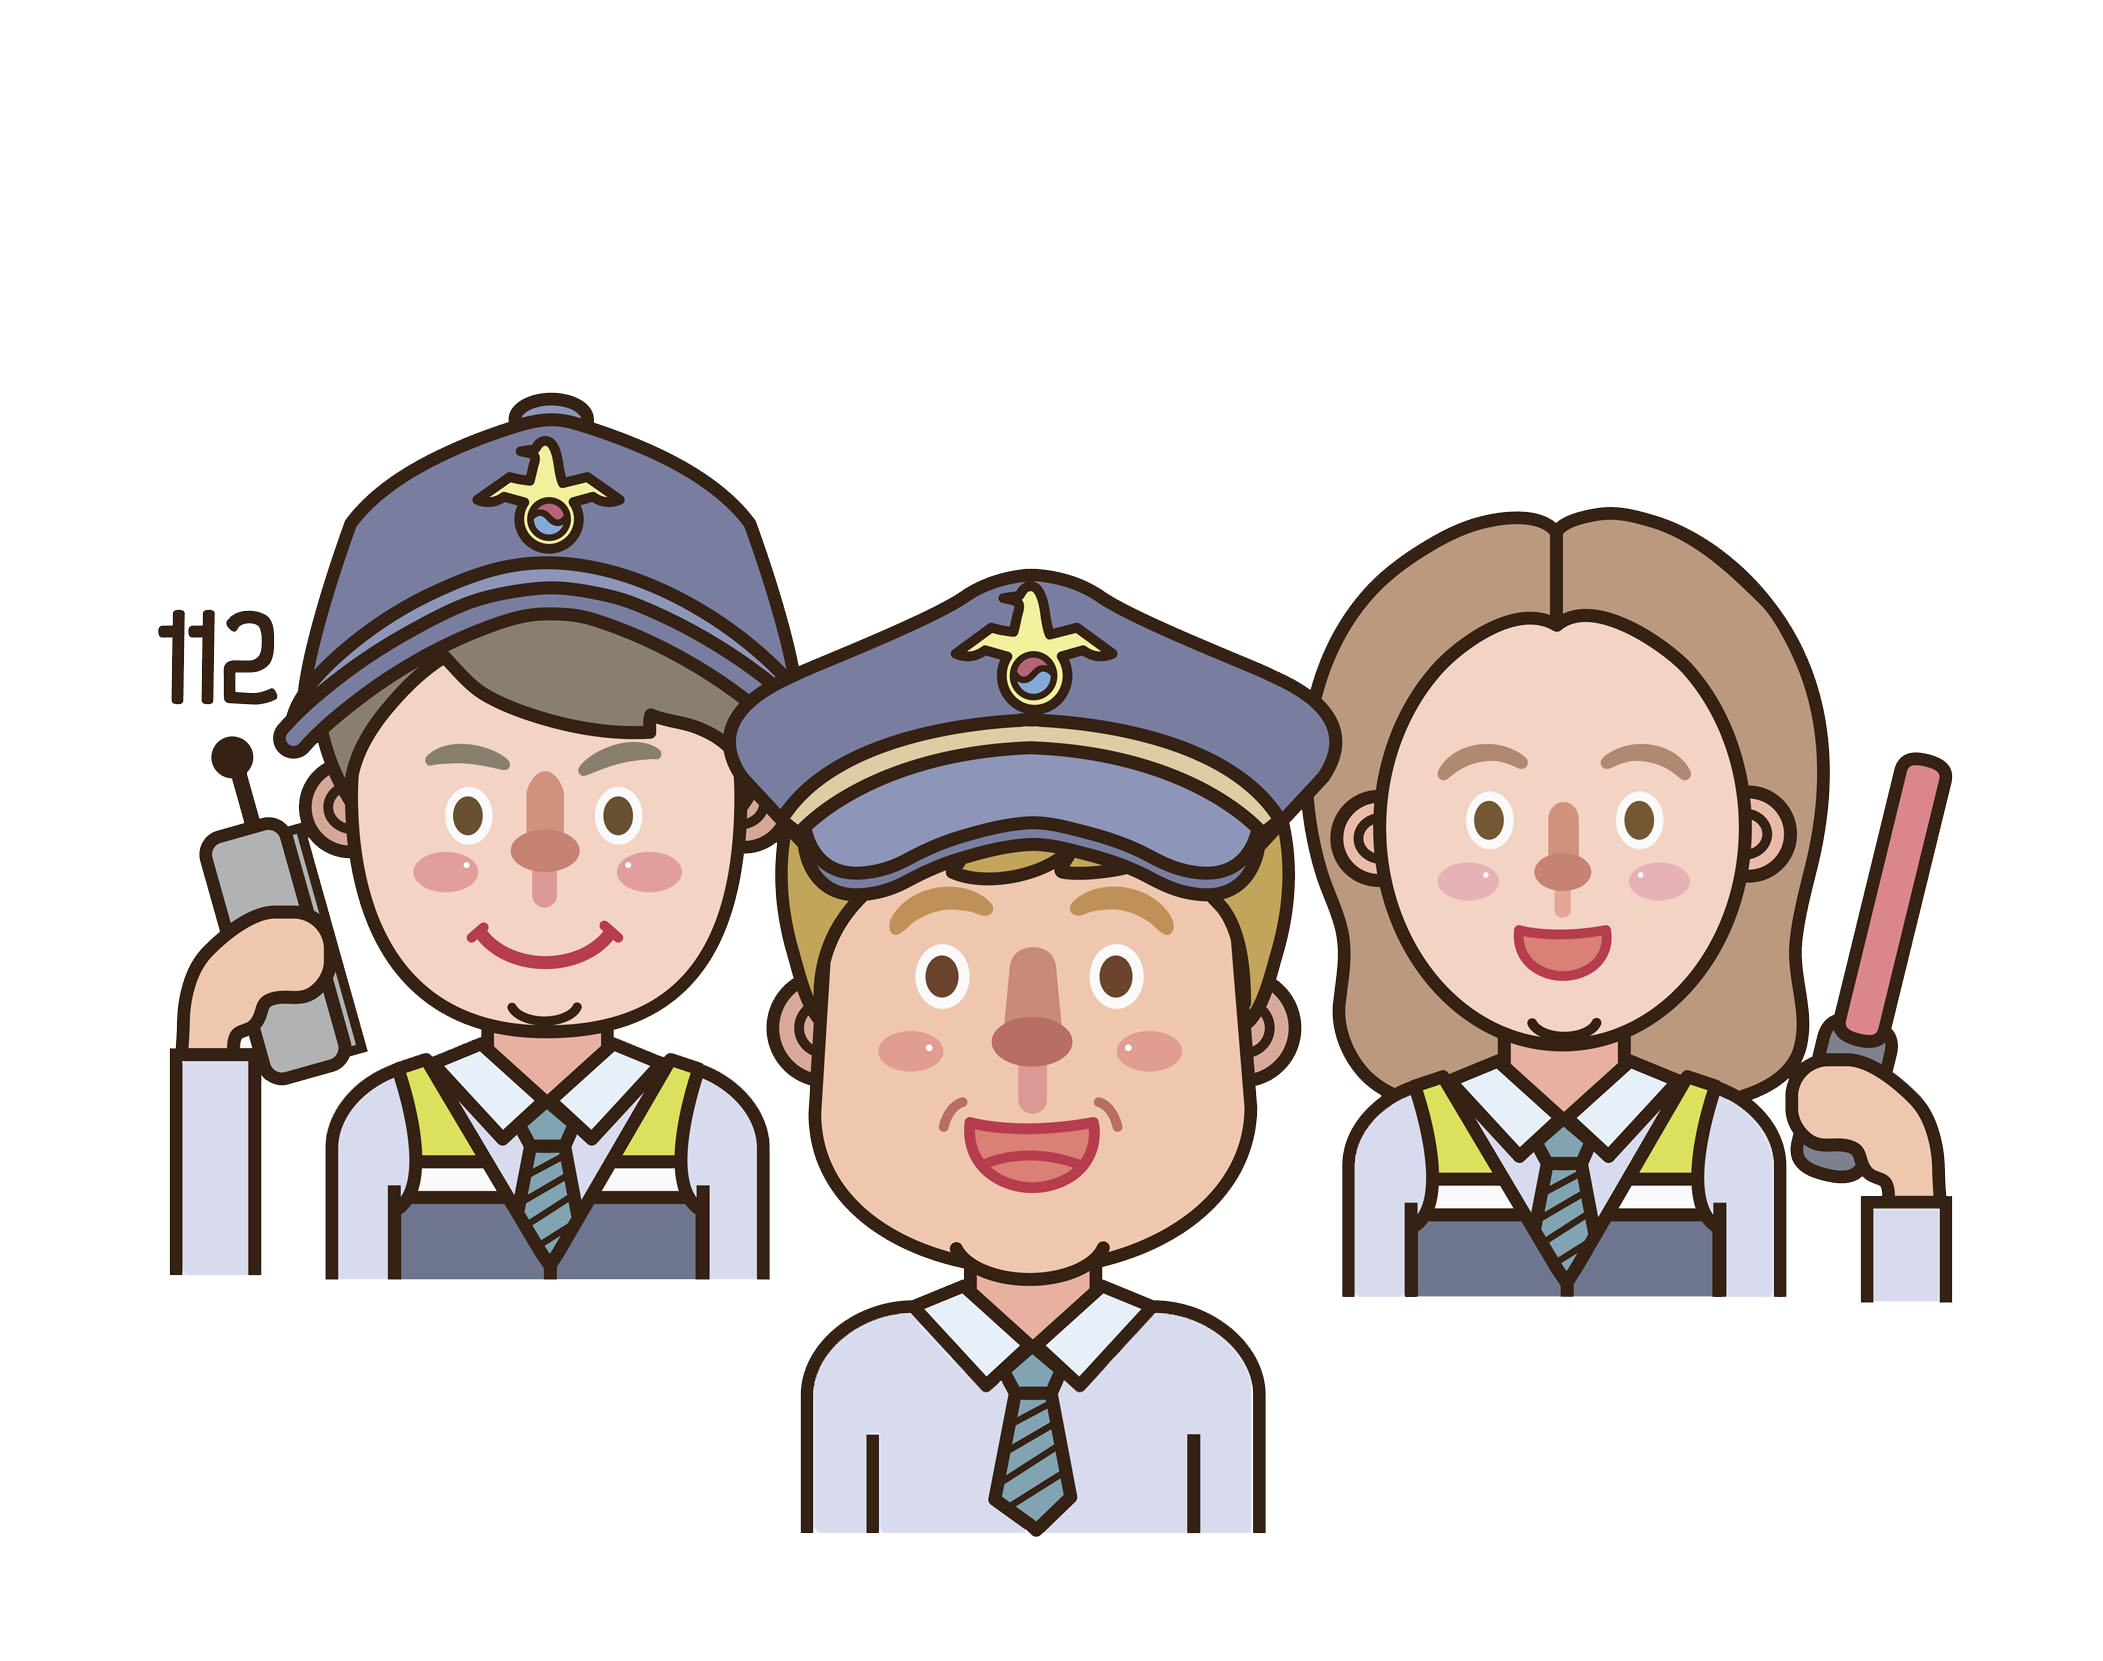 Human clipart community person. Uniform police officer support